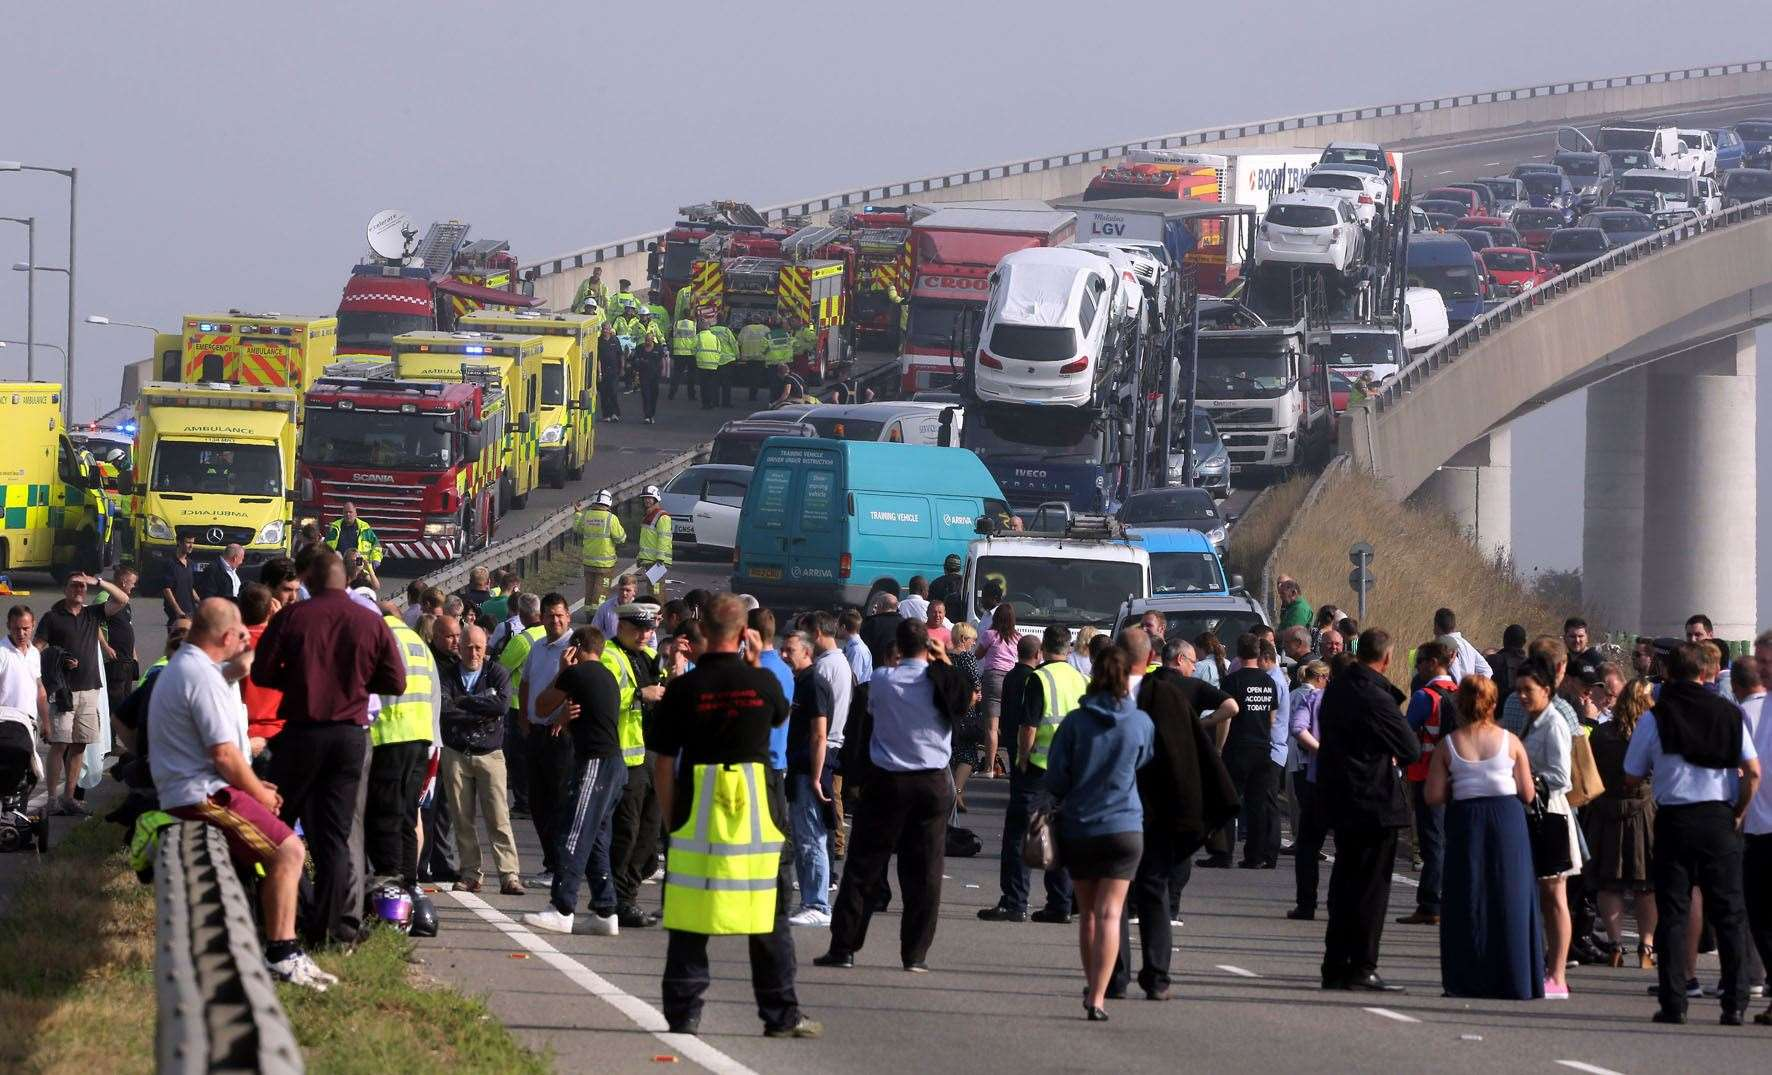 A general view of the scene on the London bound carriageway of the Sheppey Bridge Crossing